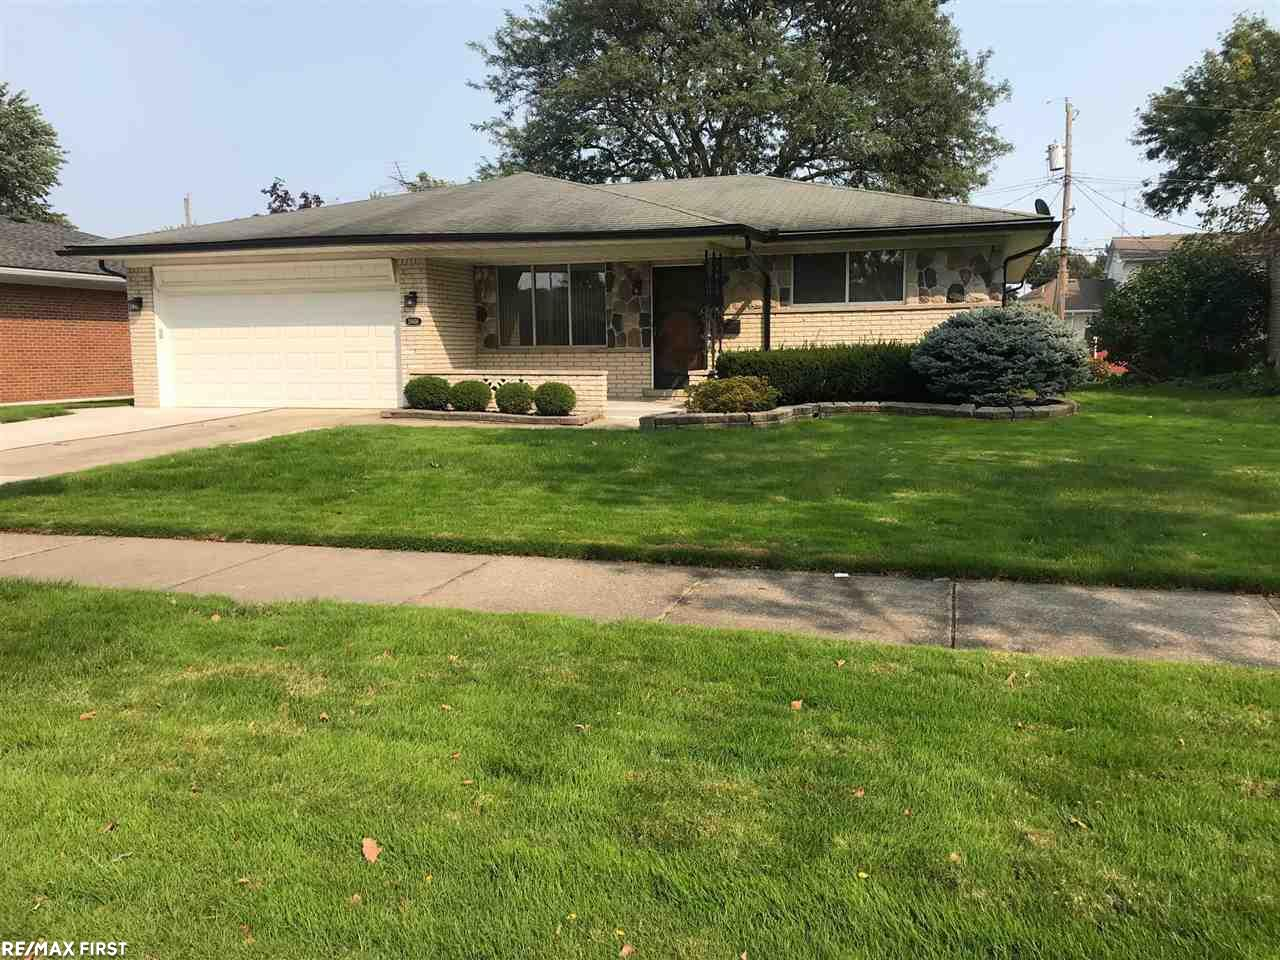 Meticulously clean, tastefully decorated and artistically landscaped describes this 4 sided brick ranch. Furnace and A/C- 2019, gutter and outside lights- 2018 Extra wide driveway and sidewalks, porch, patio, sump pump with back pump is newer. Water proof basement with lifetime warranty transferable with seller paying $150 transfer fee. Newer kitchen, Master suite with full bathroom, Finished basement with wet bar!! Must see to appreciate!! Price and Compare.